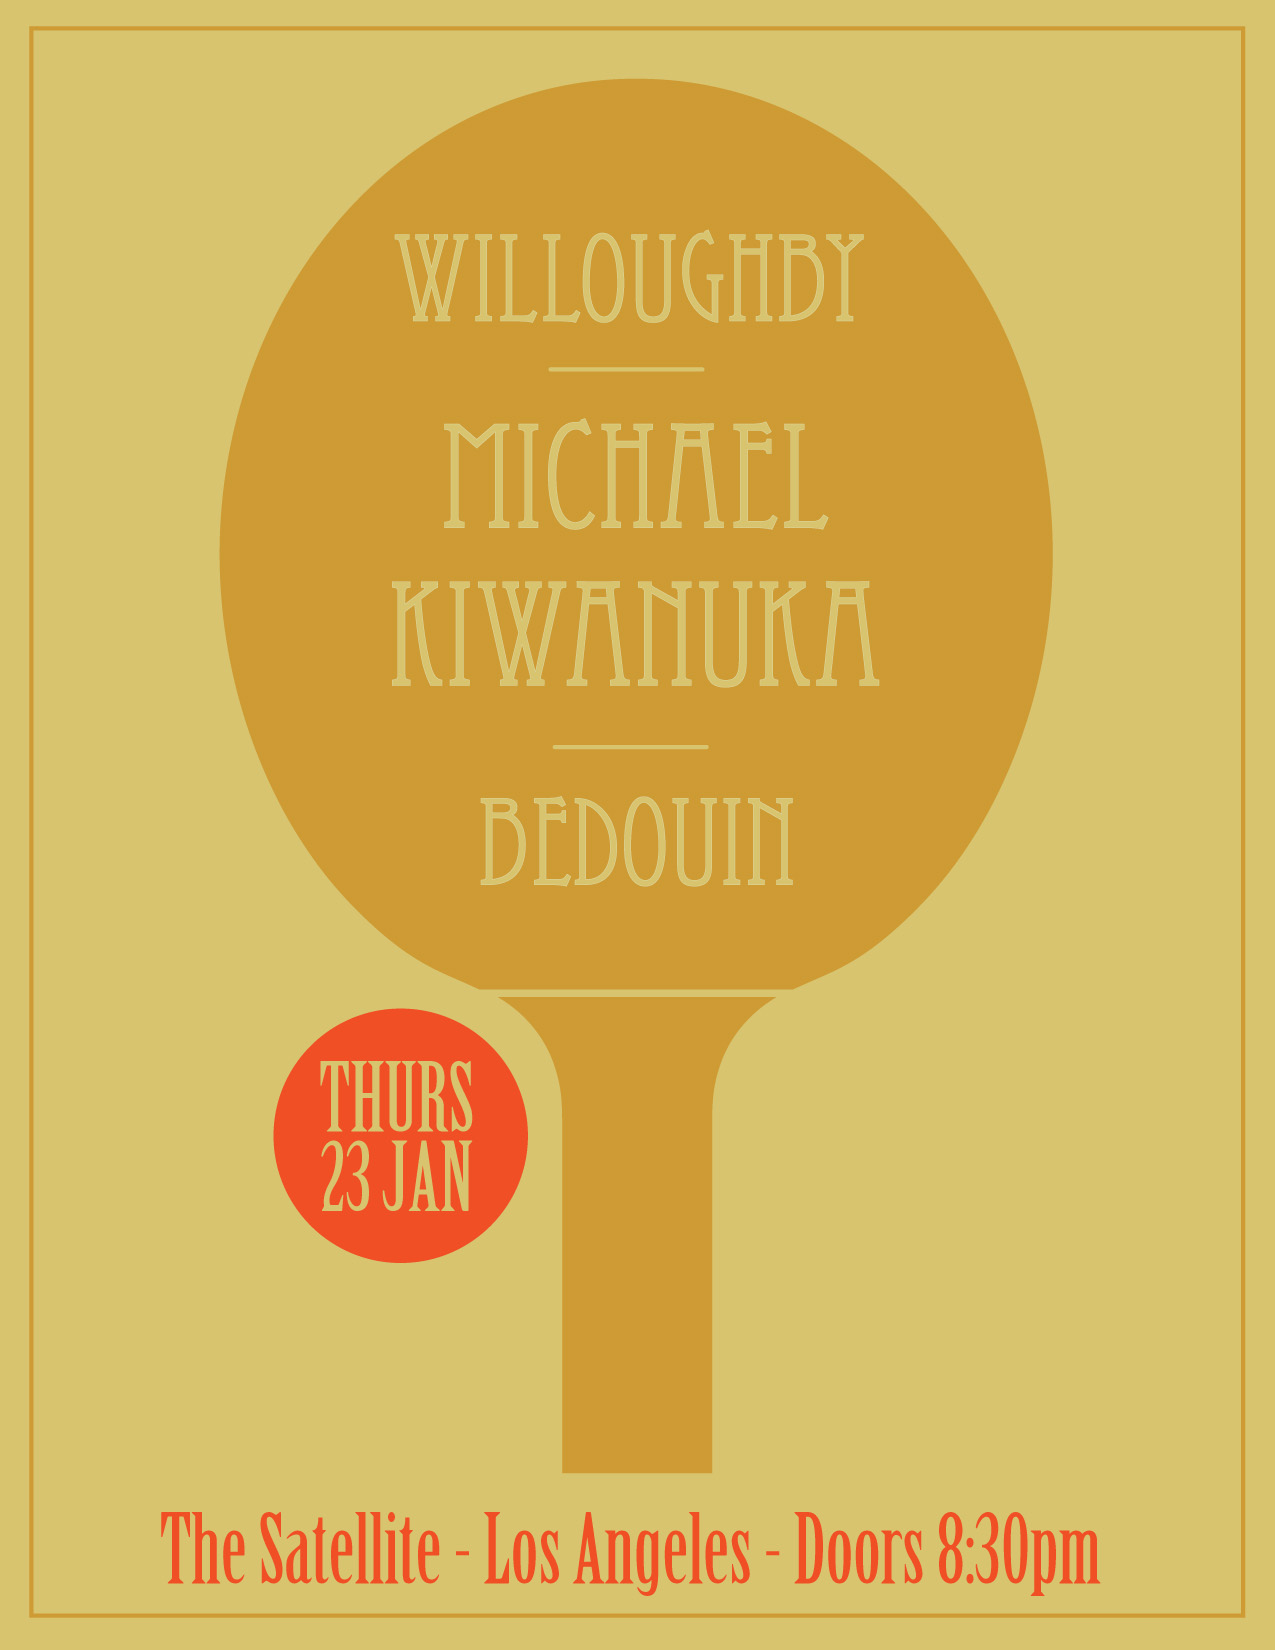 The Satellite presents Willoughby with special guests Michael Kiwanuka and Bedouin Thu, January 23, 2014 Doors: 8:30 pm / Show: 9:00 pm (event ends at 2:00 am) The Satellite Los Angeles, CA $12.00 baby robot